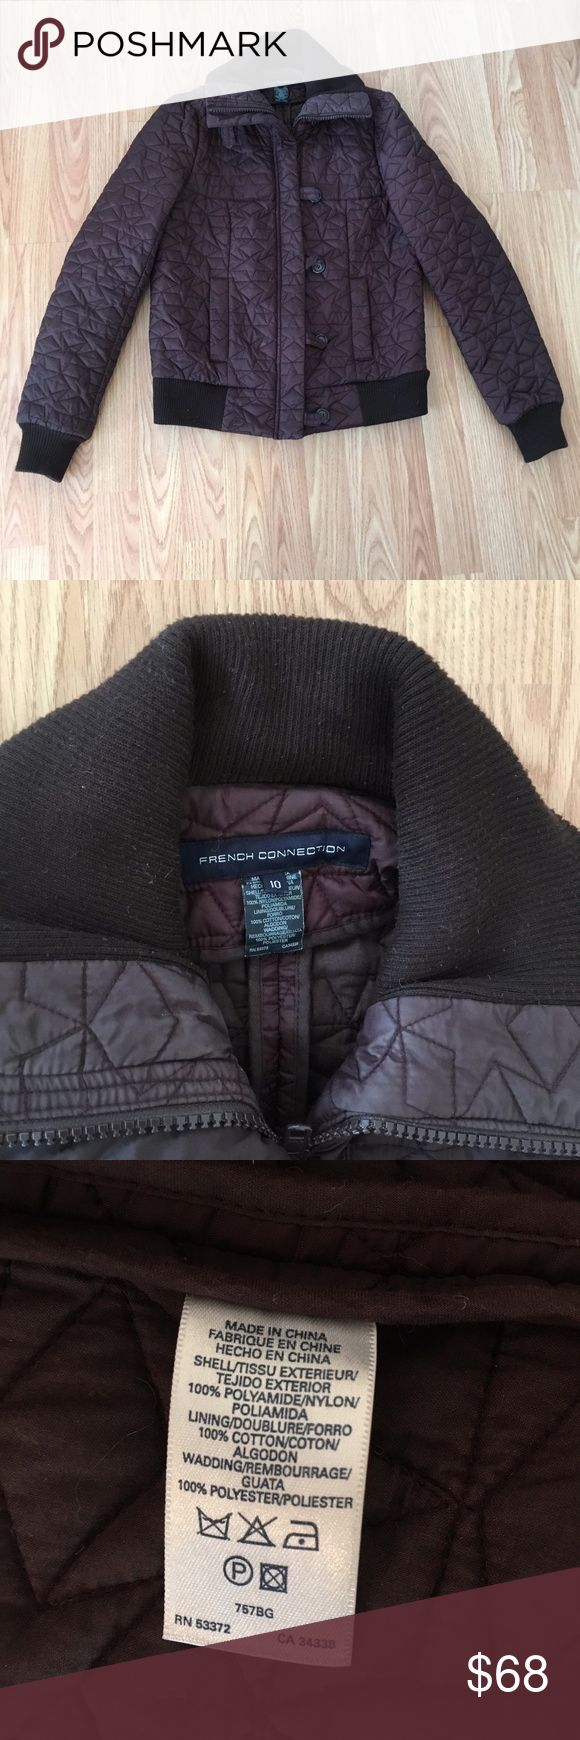 French Connection Quilted Star Bomber Jacket Quilted bomber jacket with star pattern by French Connection. Time to part with this awesome jacket, it's too snug on me. This coat is one of my favorites for its unique style. Quilted with a star pattern, very well made, thick and warm. Dark brown with a purple-ish hue. Size 10, definitely a small 10, I usually wear a small or medium in shirts and it's snug on me. Mint condition!  Features: Ribbed collar, cuffs and hem 2 front side pockets Zip…